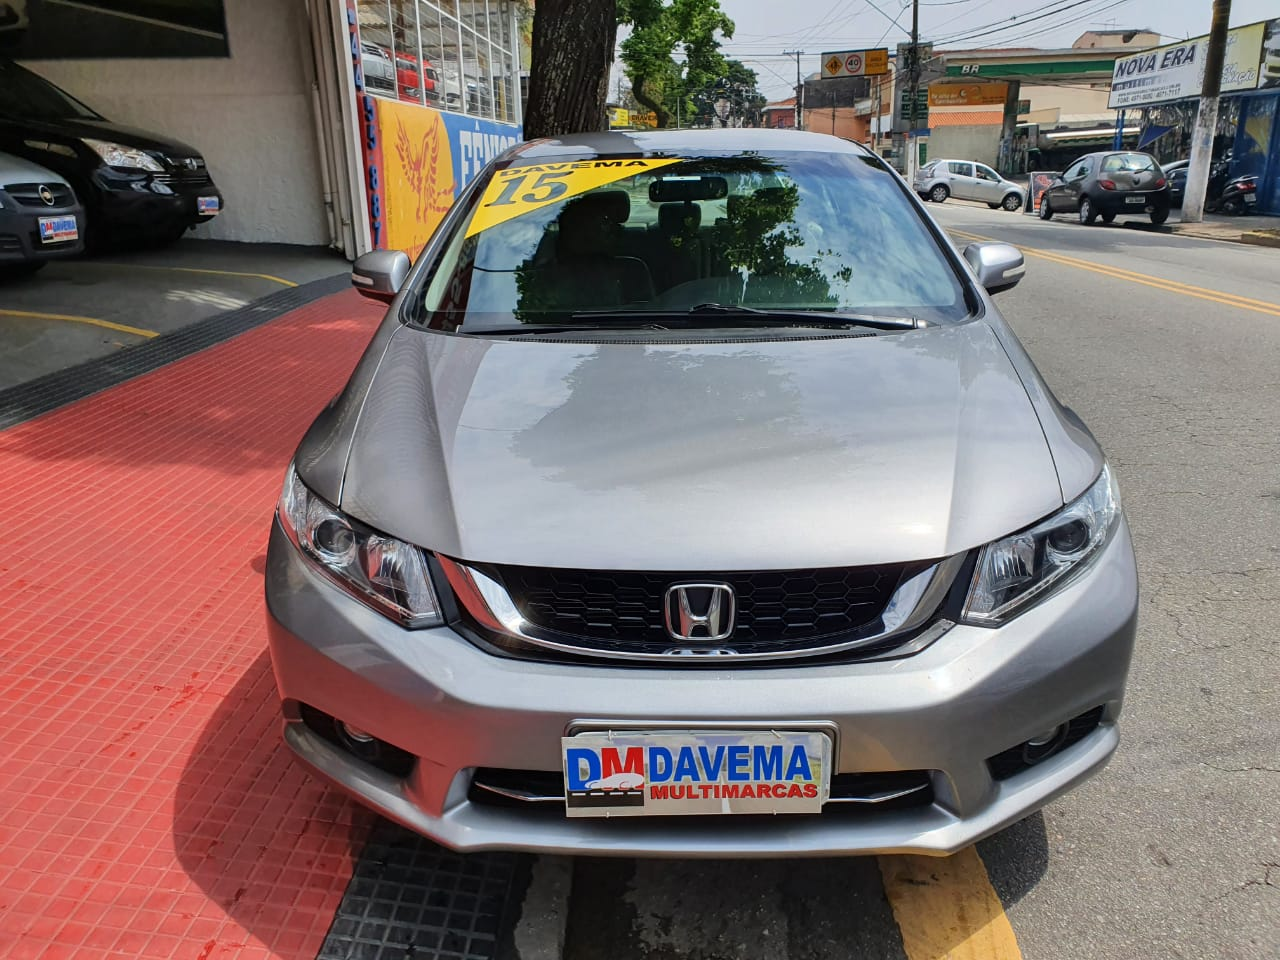 Civic LXR 2.0 i-VTEC (Aut) (Flex) 2015